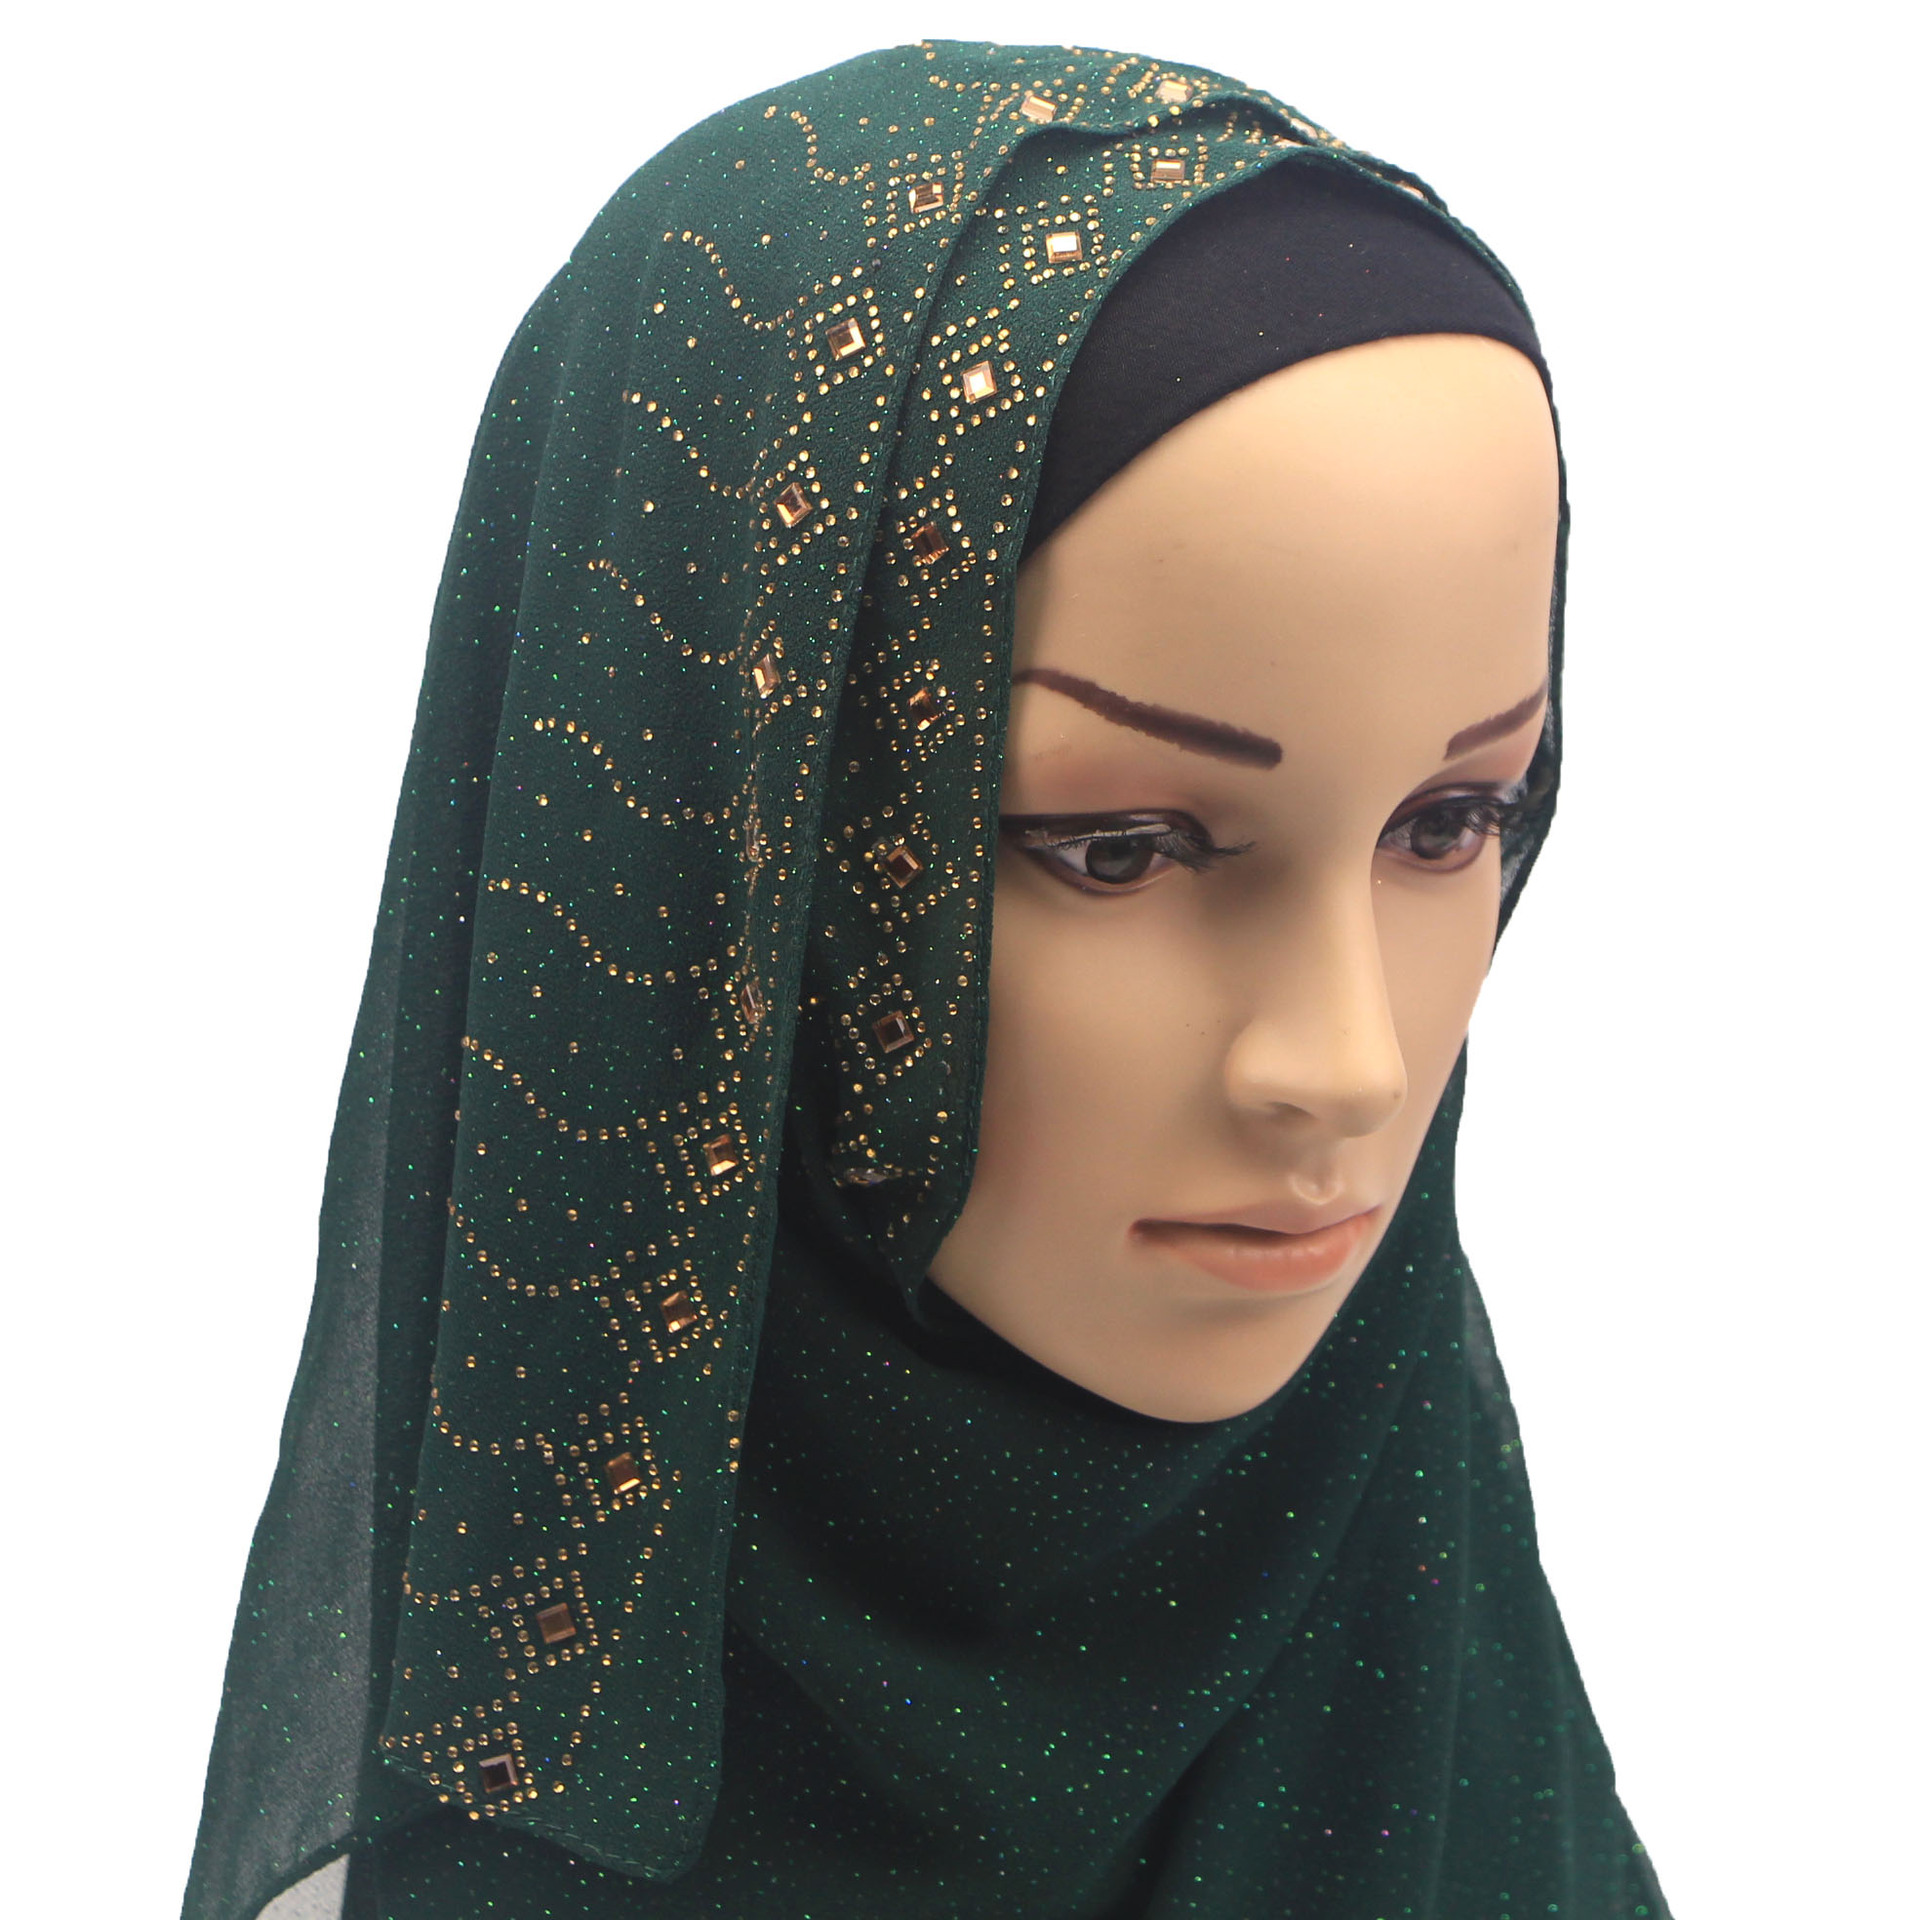 Full Range Of Specifications And Sizes Honesty Fashion Women Scarf Gold Edge Luxury Silk Satin Shawl Scarves And Shawls Muslim Long Beach Pareo Hijab Spring Silk Scarf Famous For High Quality Raw Materials And Great Variety Of Designs And Colors